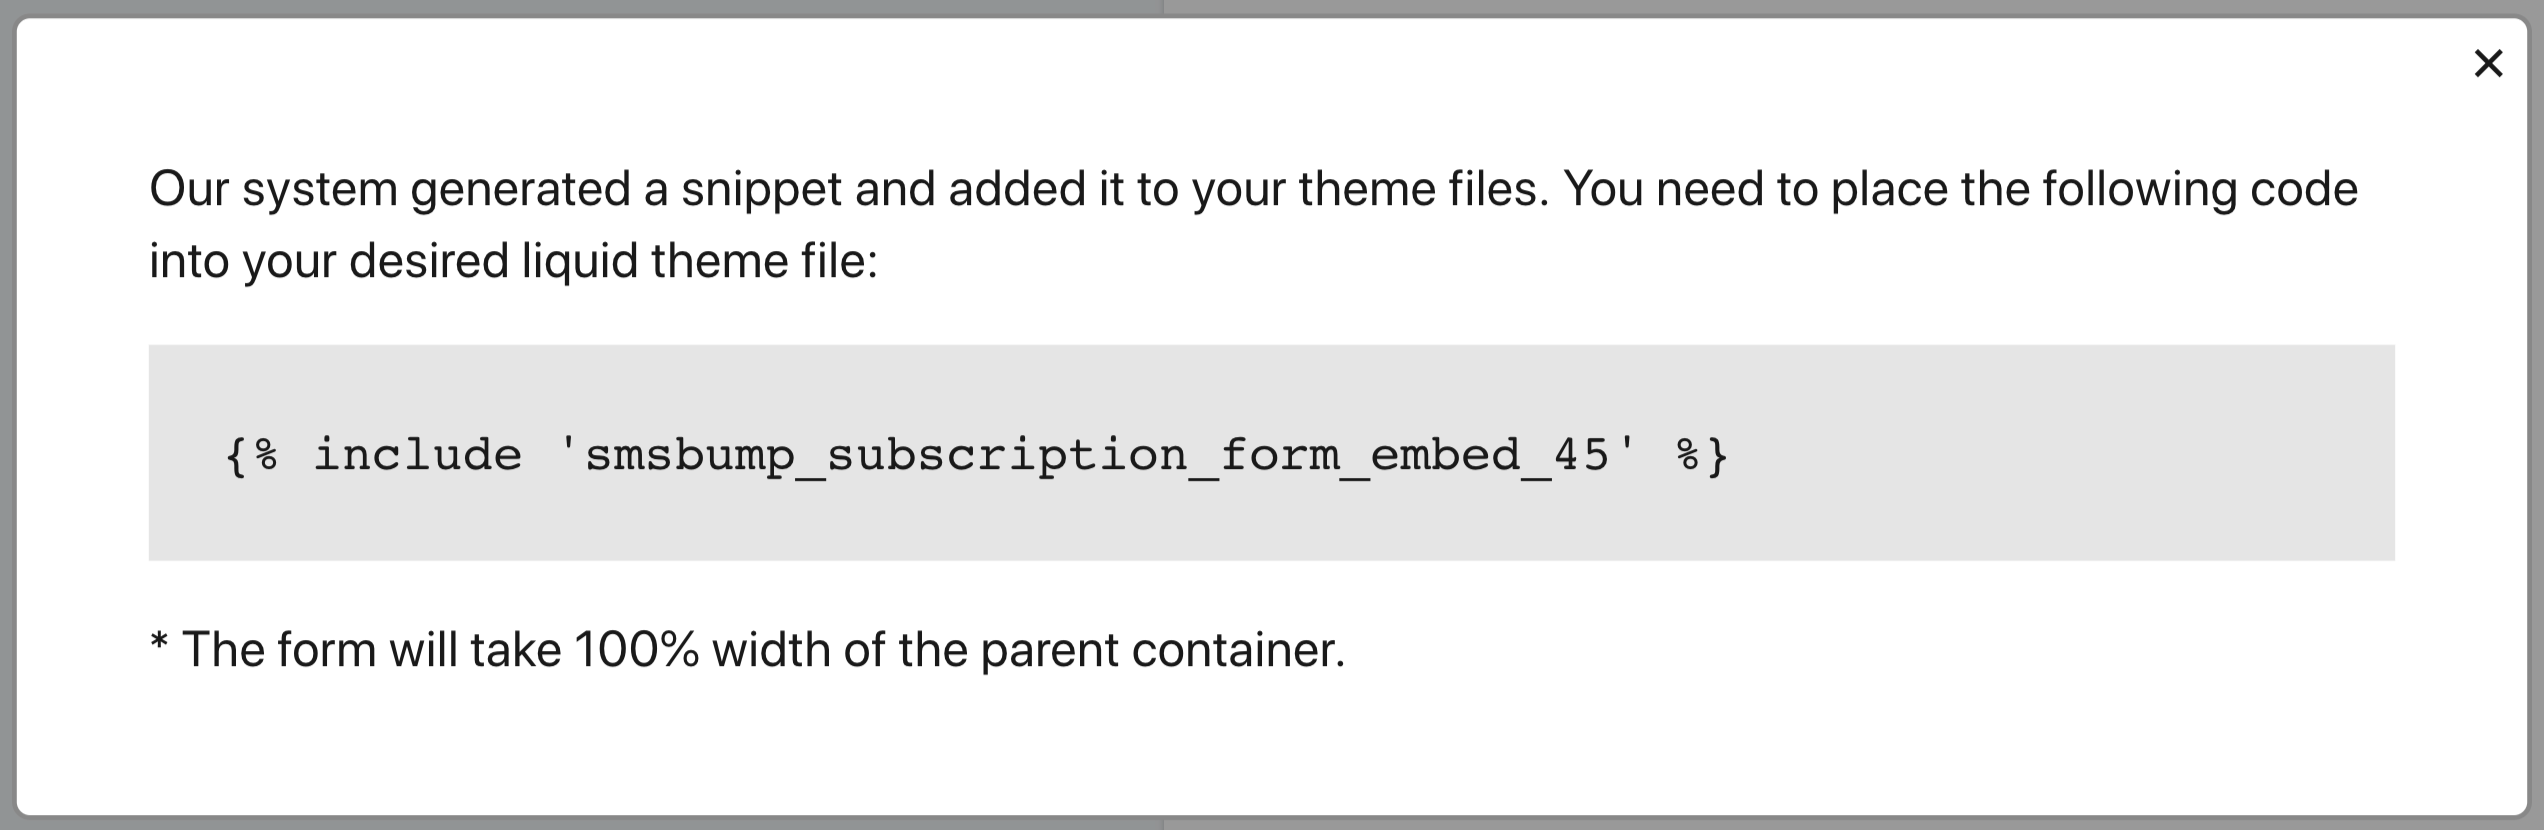 SMSBump Signup Form Embed Code